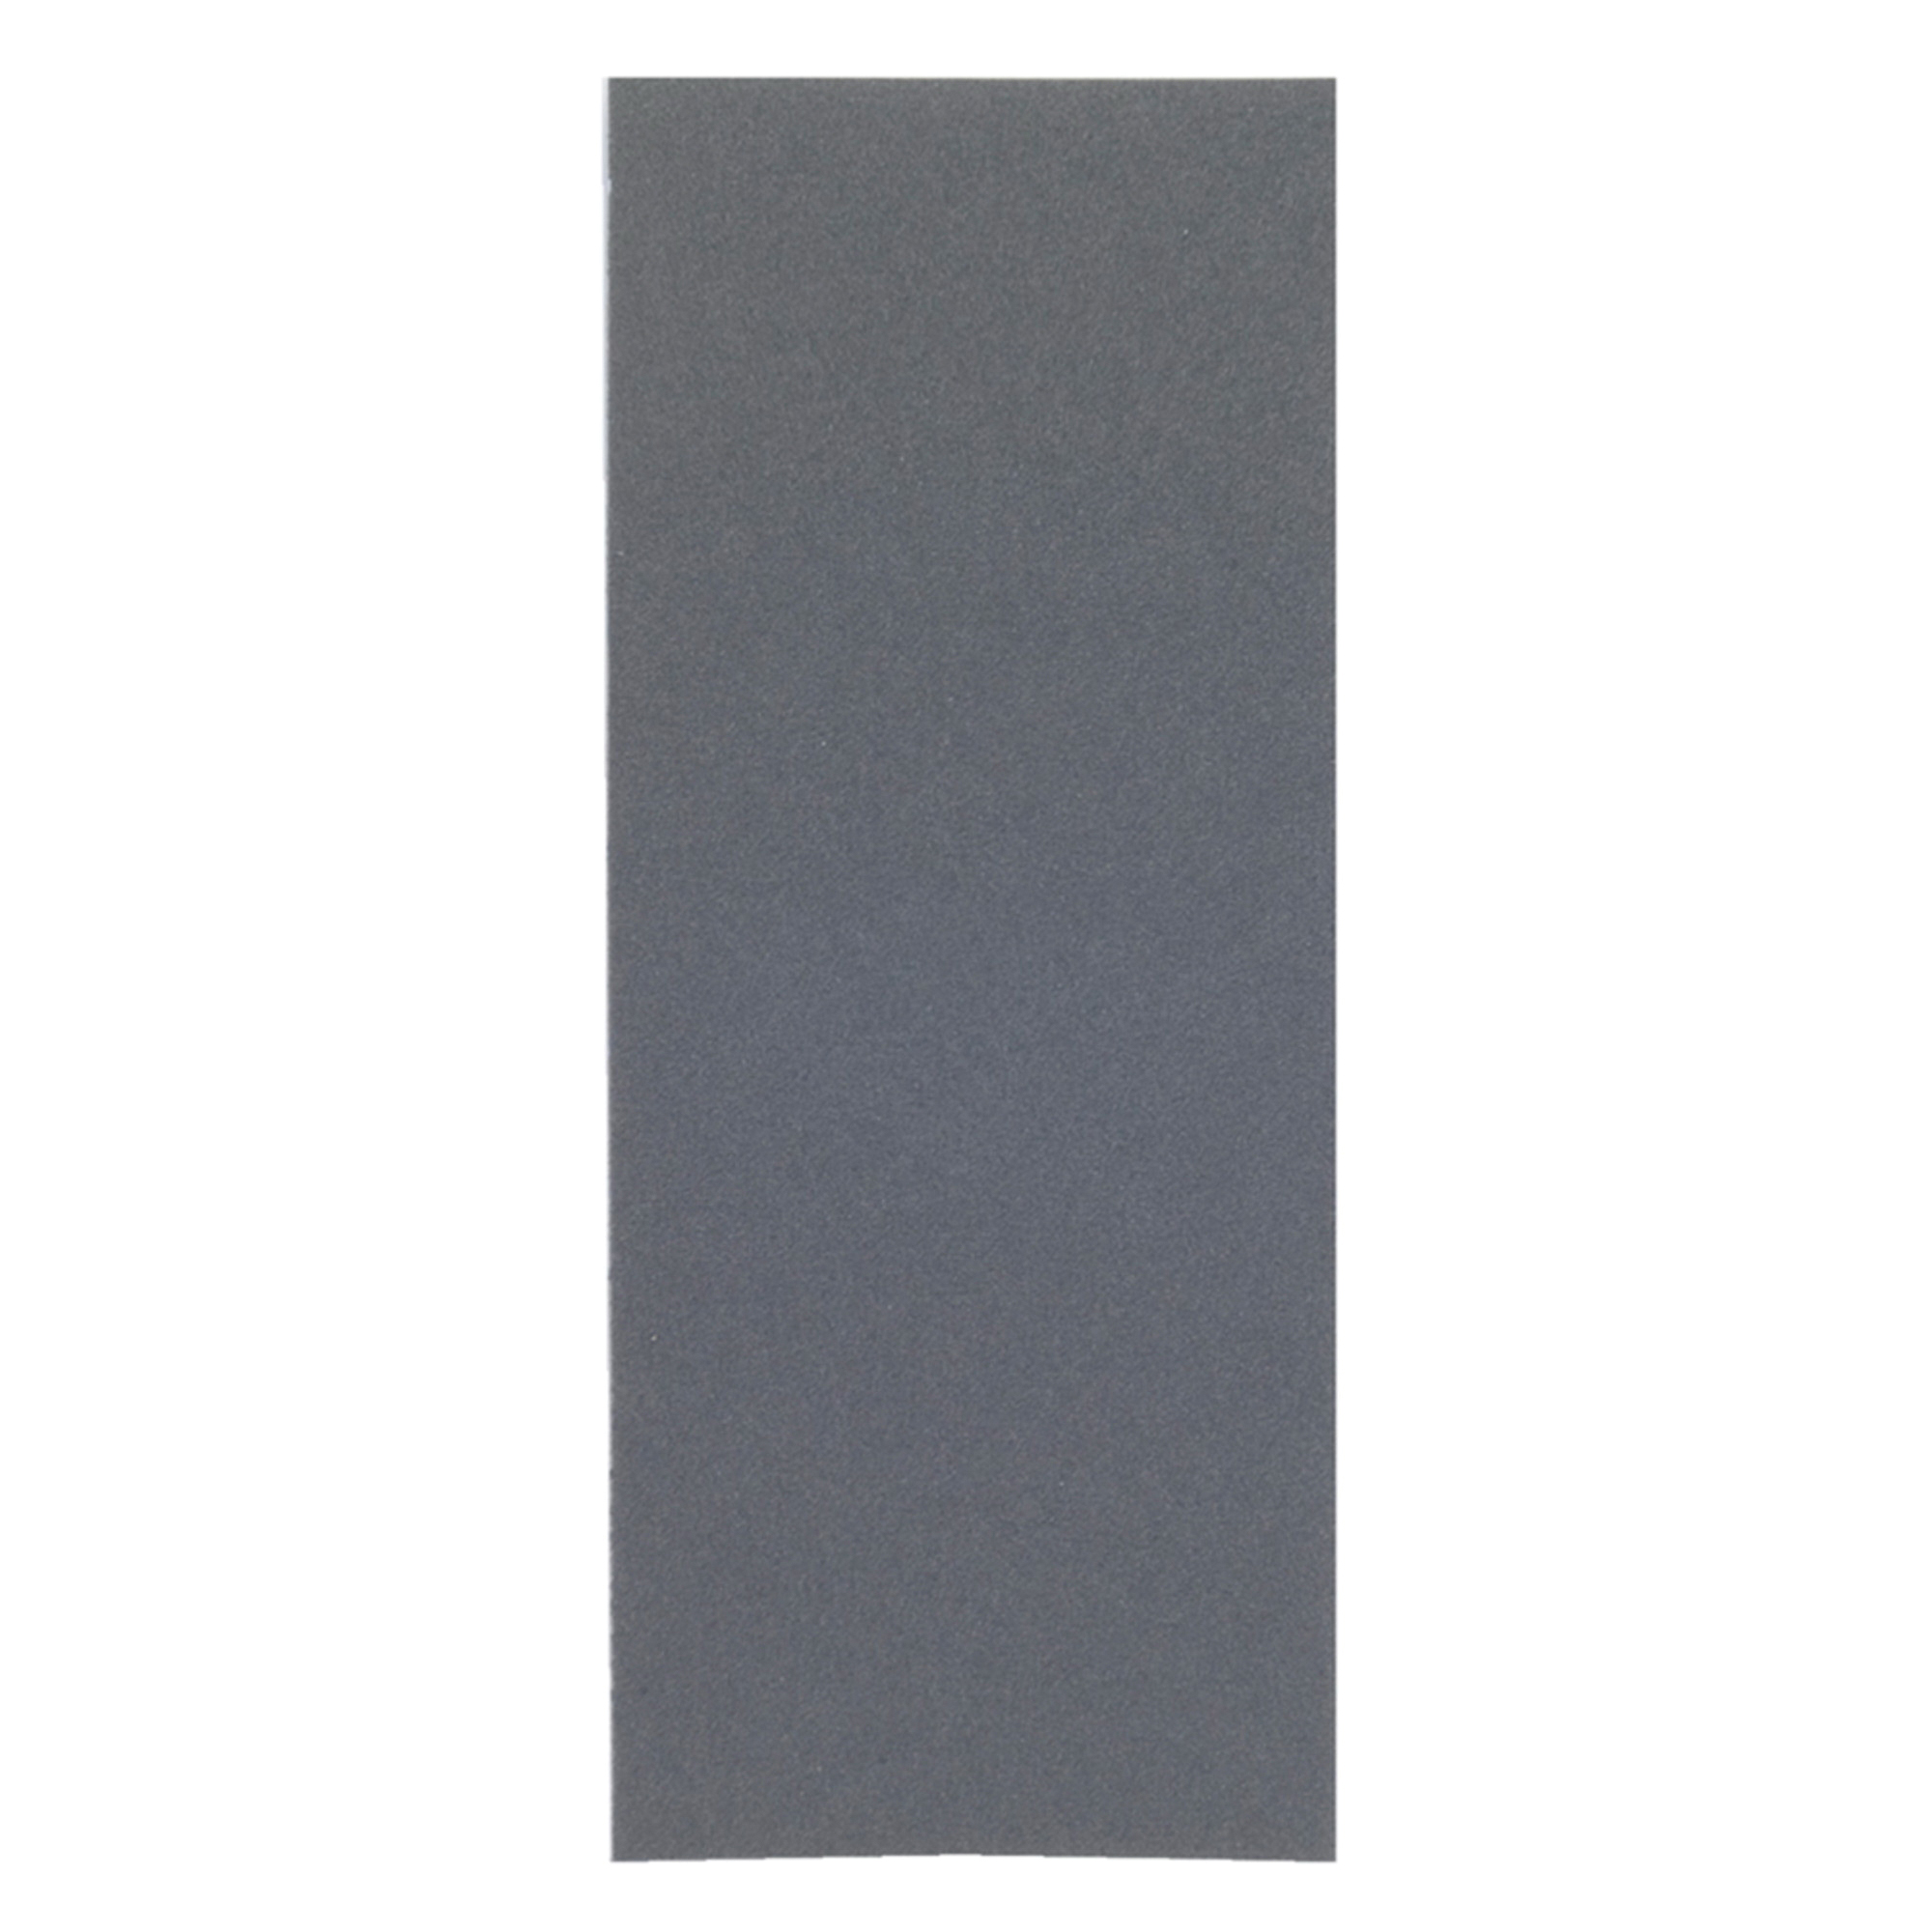 Norton® Blue-Bak™ 66261139359 T414 Coated Sandpaper Sheet, 9 in L x 3-2/3 in W, 220 Grit, Very Fine Grade, Silicon Carbide Abrasive, Paper Backing